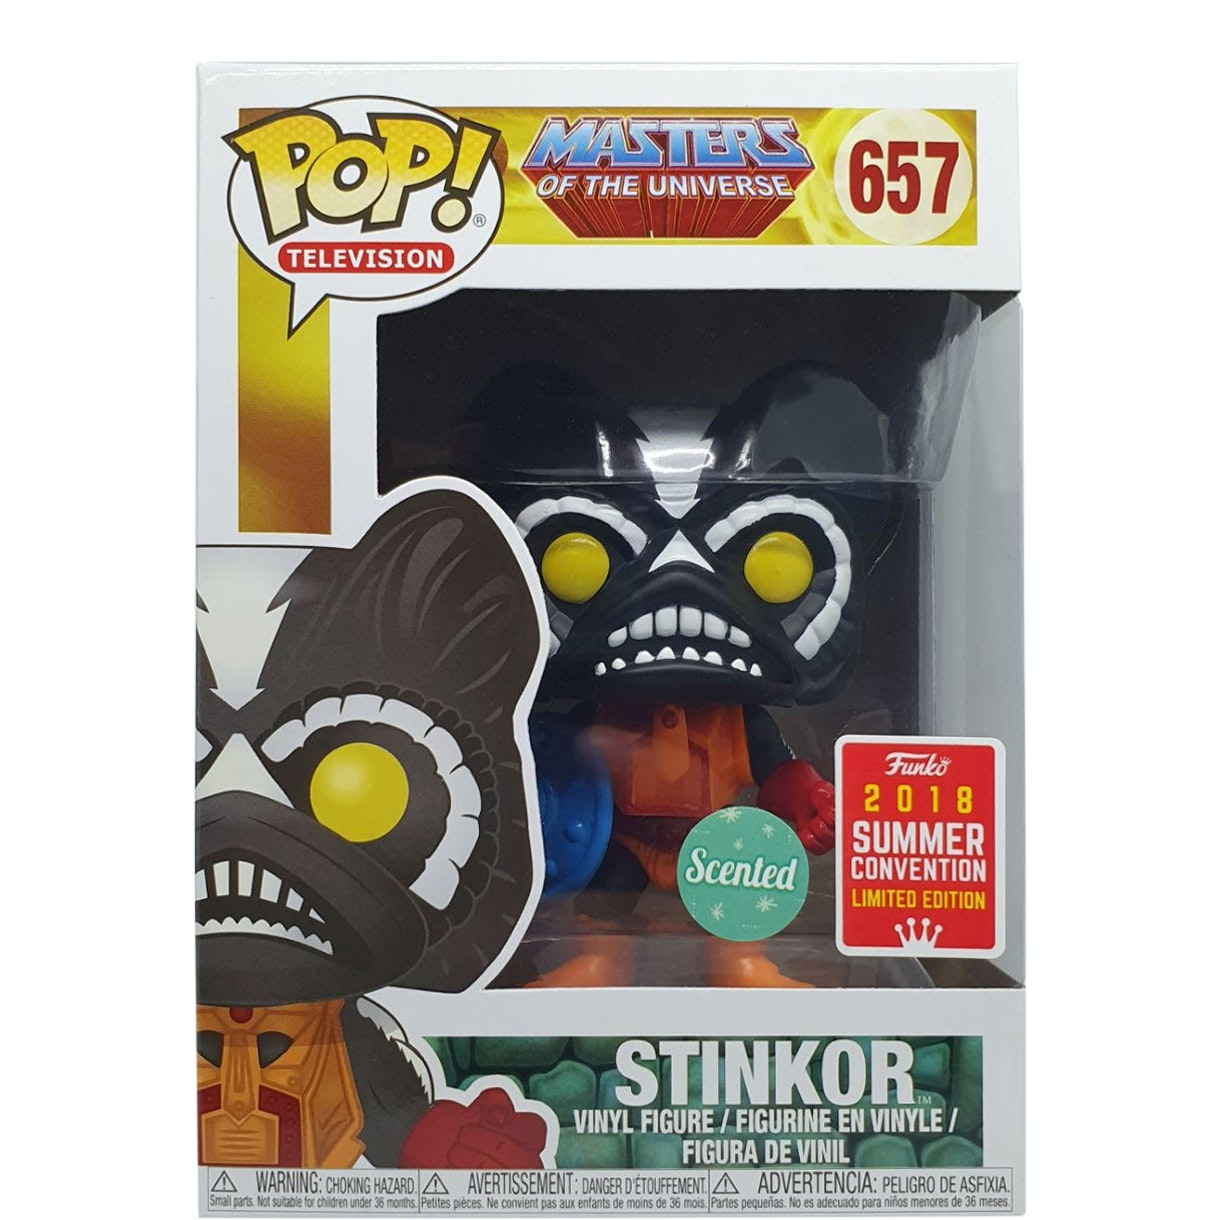 Stinkor Scented #657 Masters of the Universe 2018 Summer Convention Exclusive Funko POP